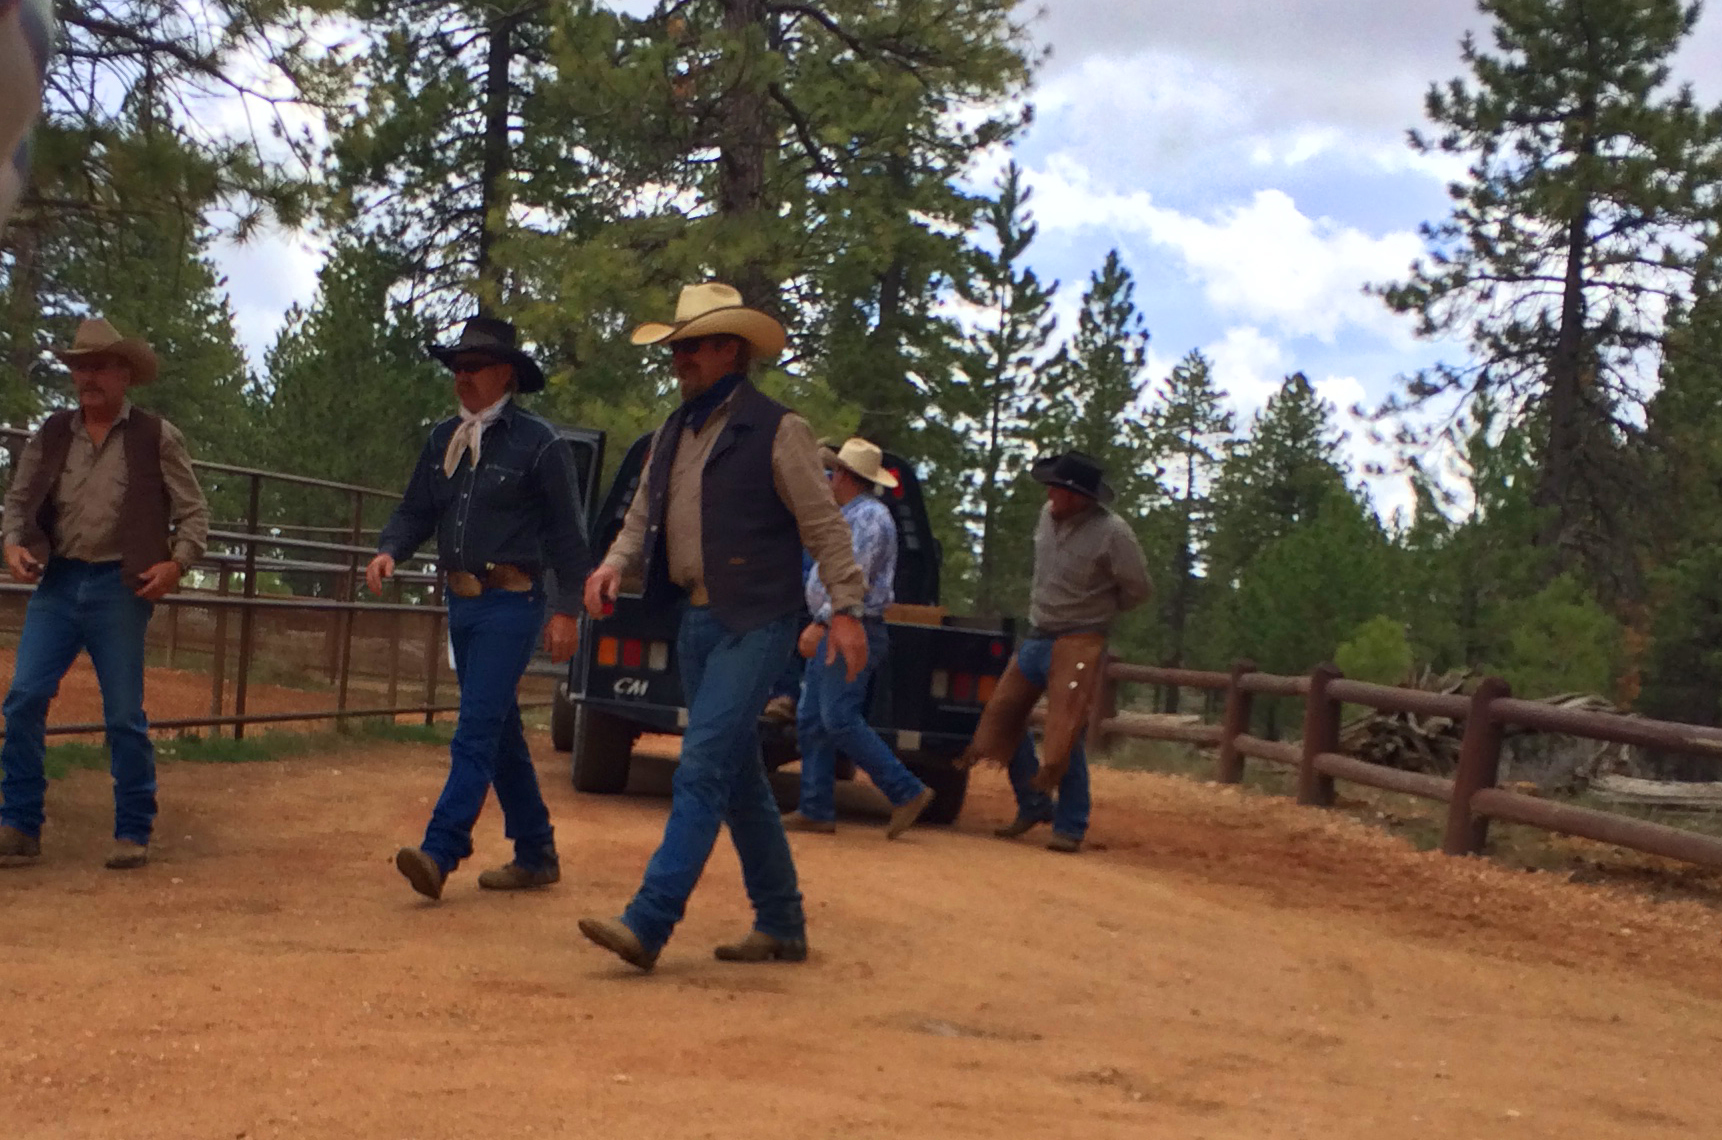 Cowboy guides from Canyon Rides in Bryce Canyon National Park in Utah